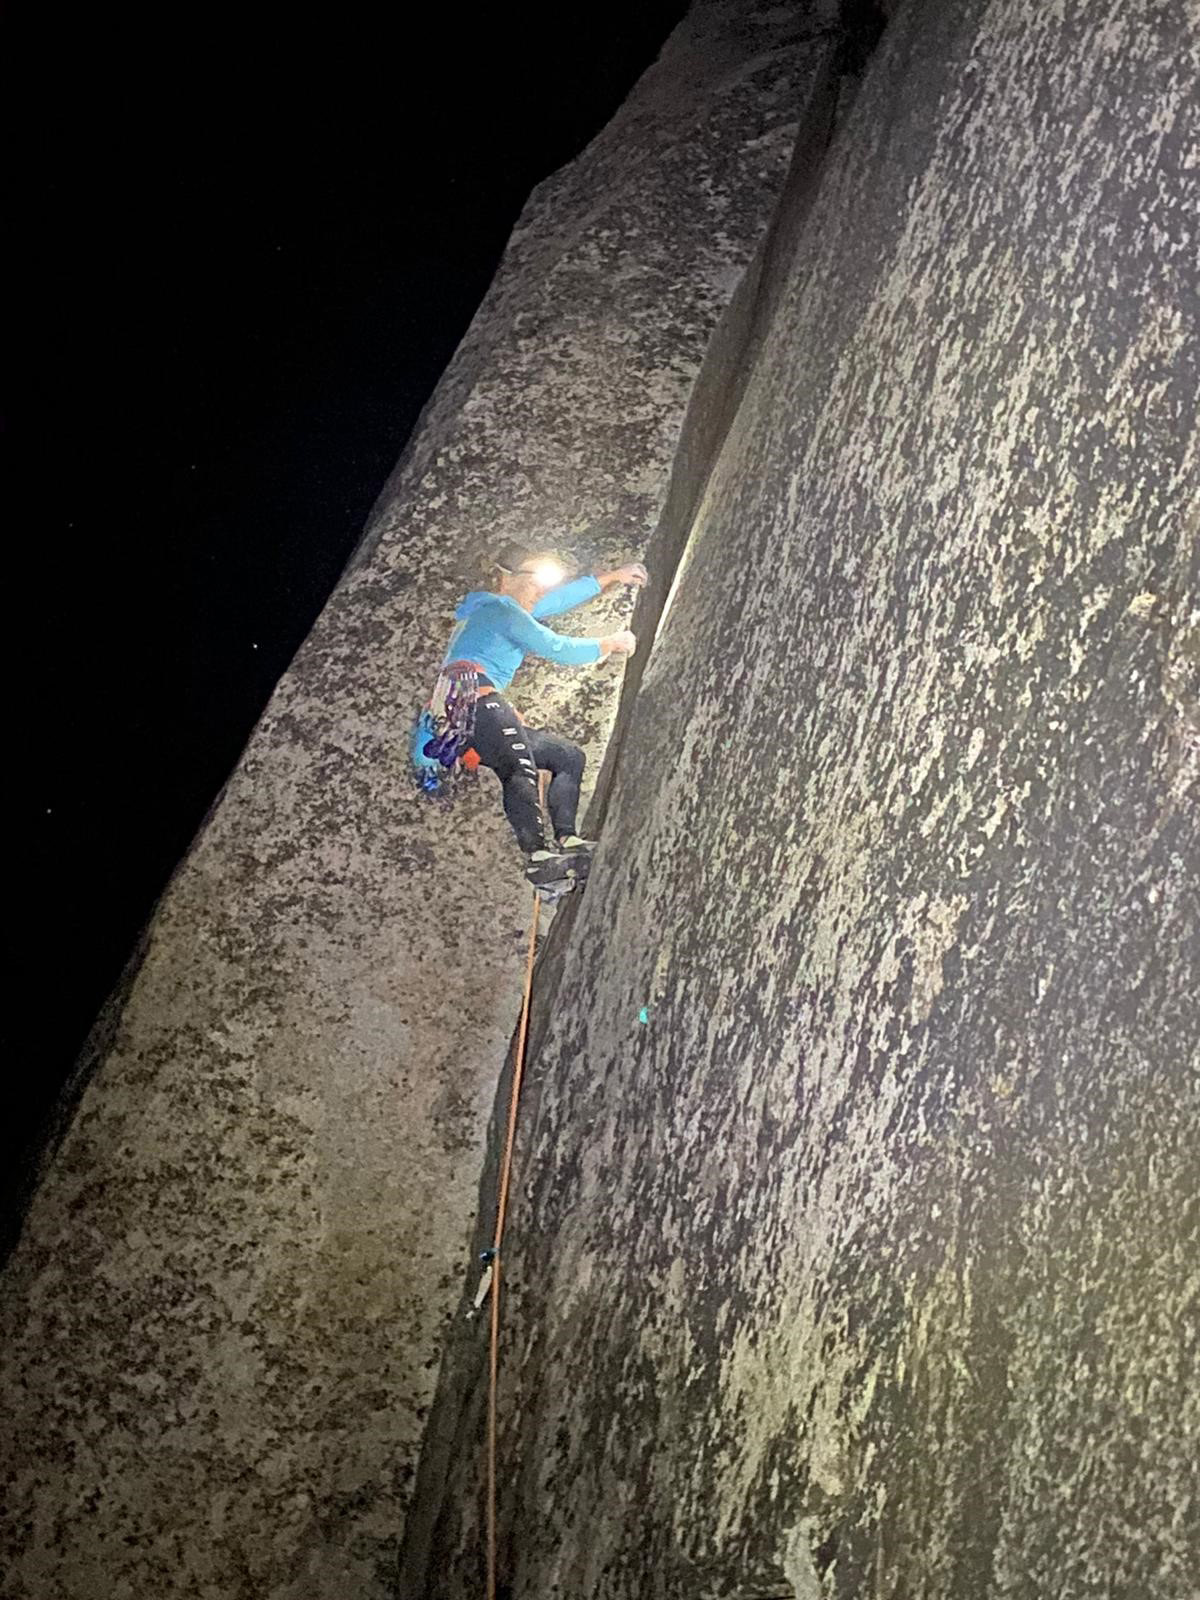 Emily Harrington First Woman to Free-Climb El Capitan in Single Day Says It's 'Pretty Special' Reaching 'Life Dream'